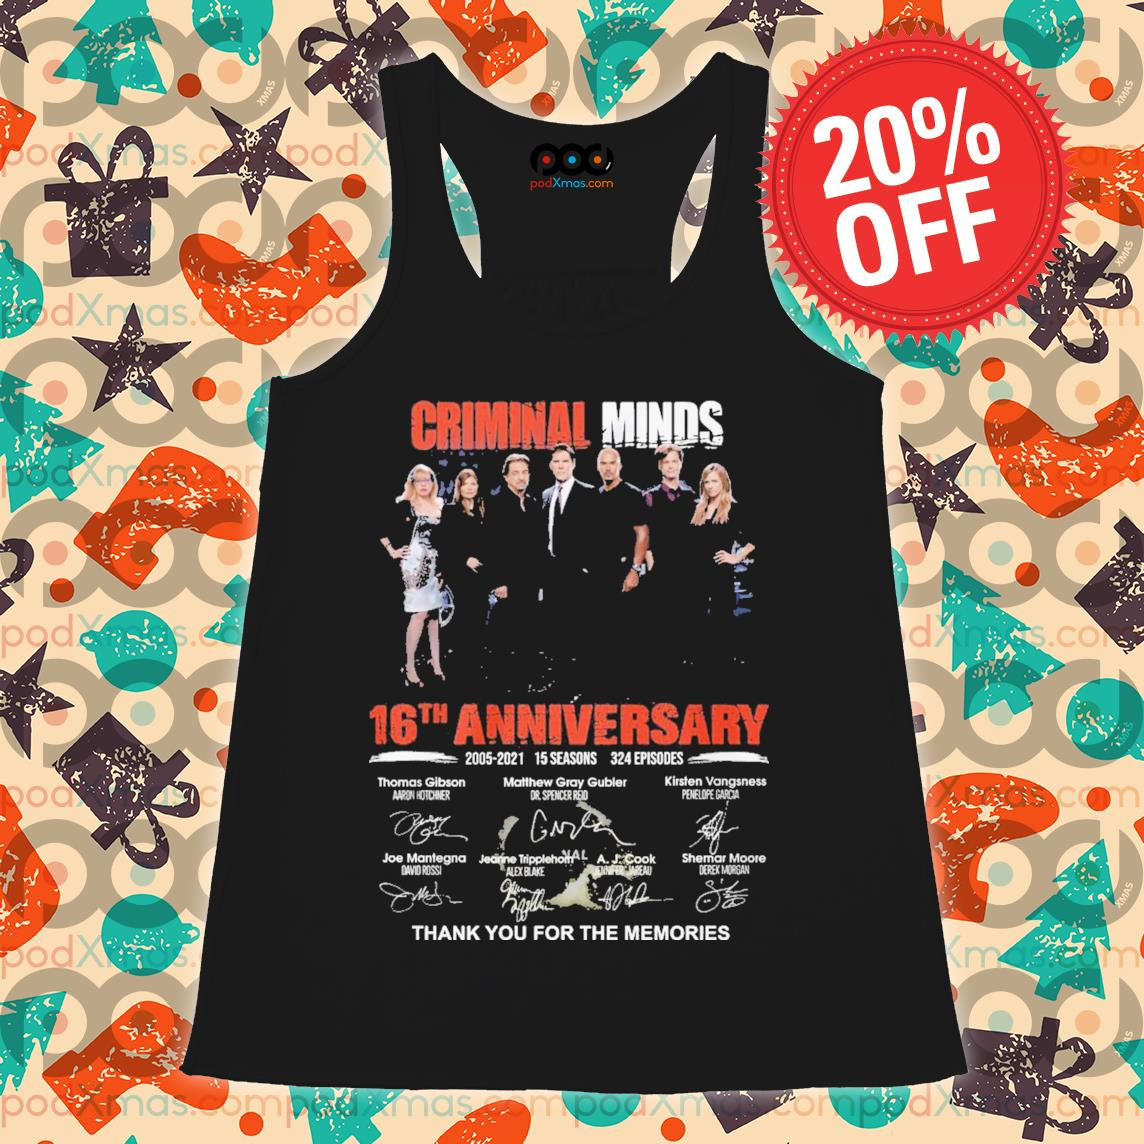 Criminal minds 16th Anniversary signature thank you for the memories s Flowy tank PODxmas den